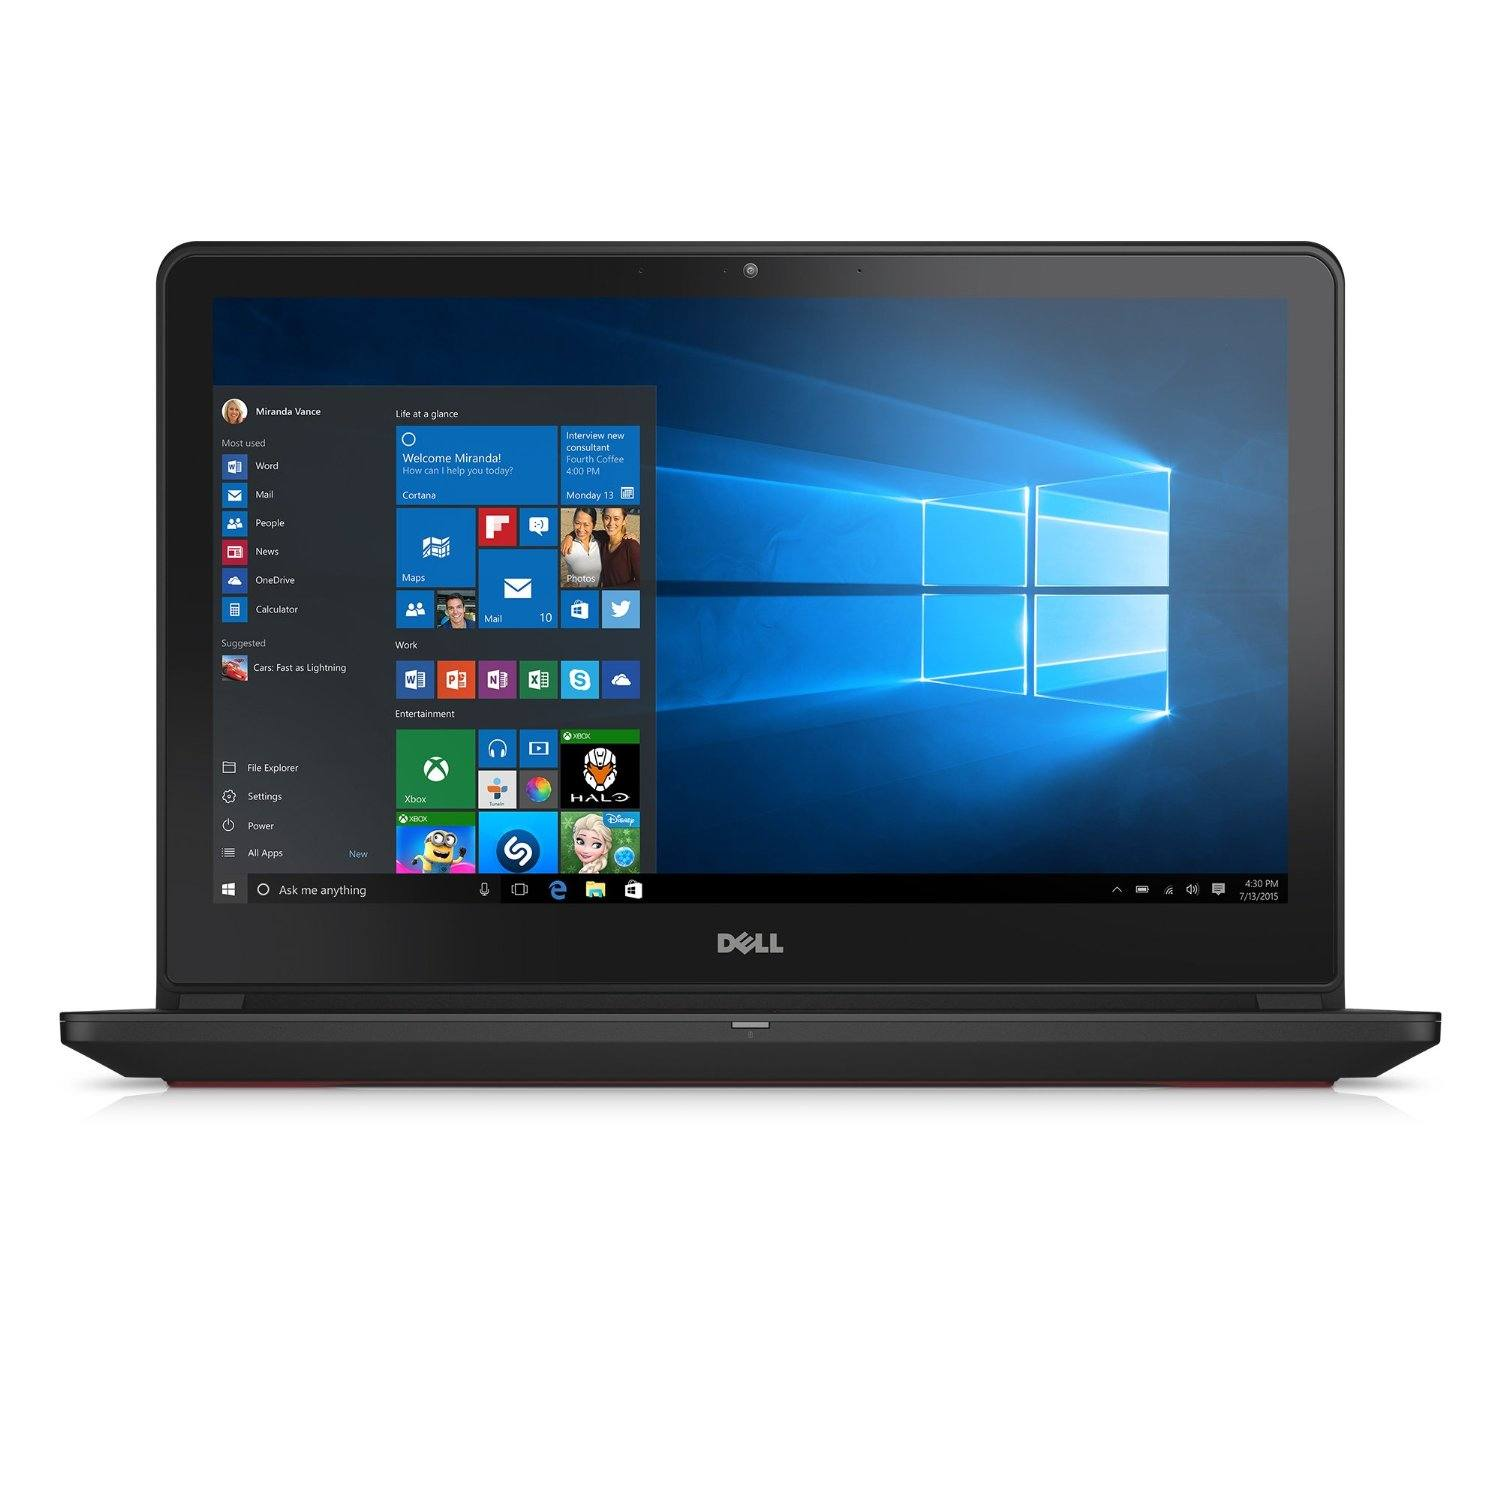 Which Dell Computer system is better looking at only these factors?